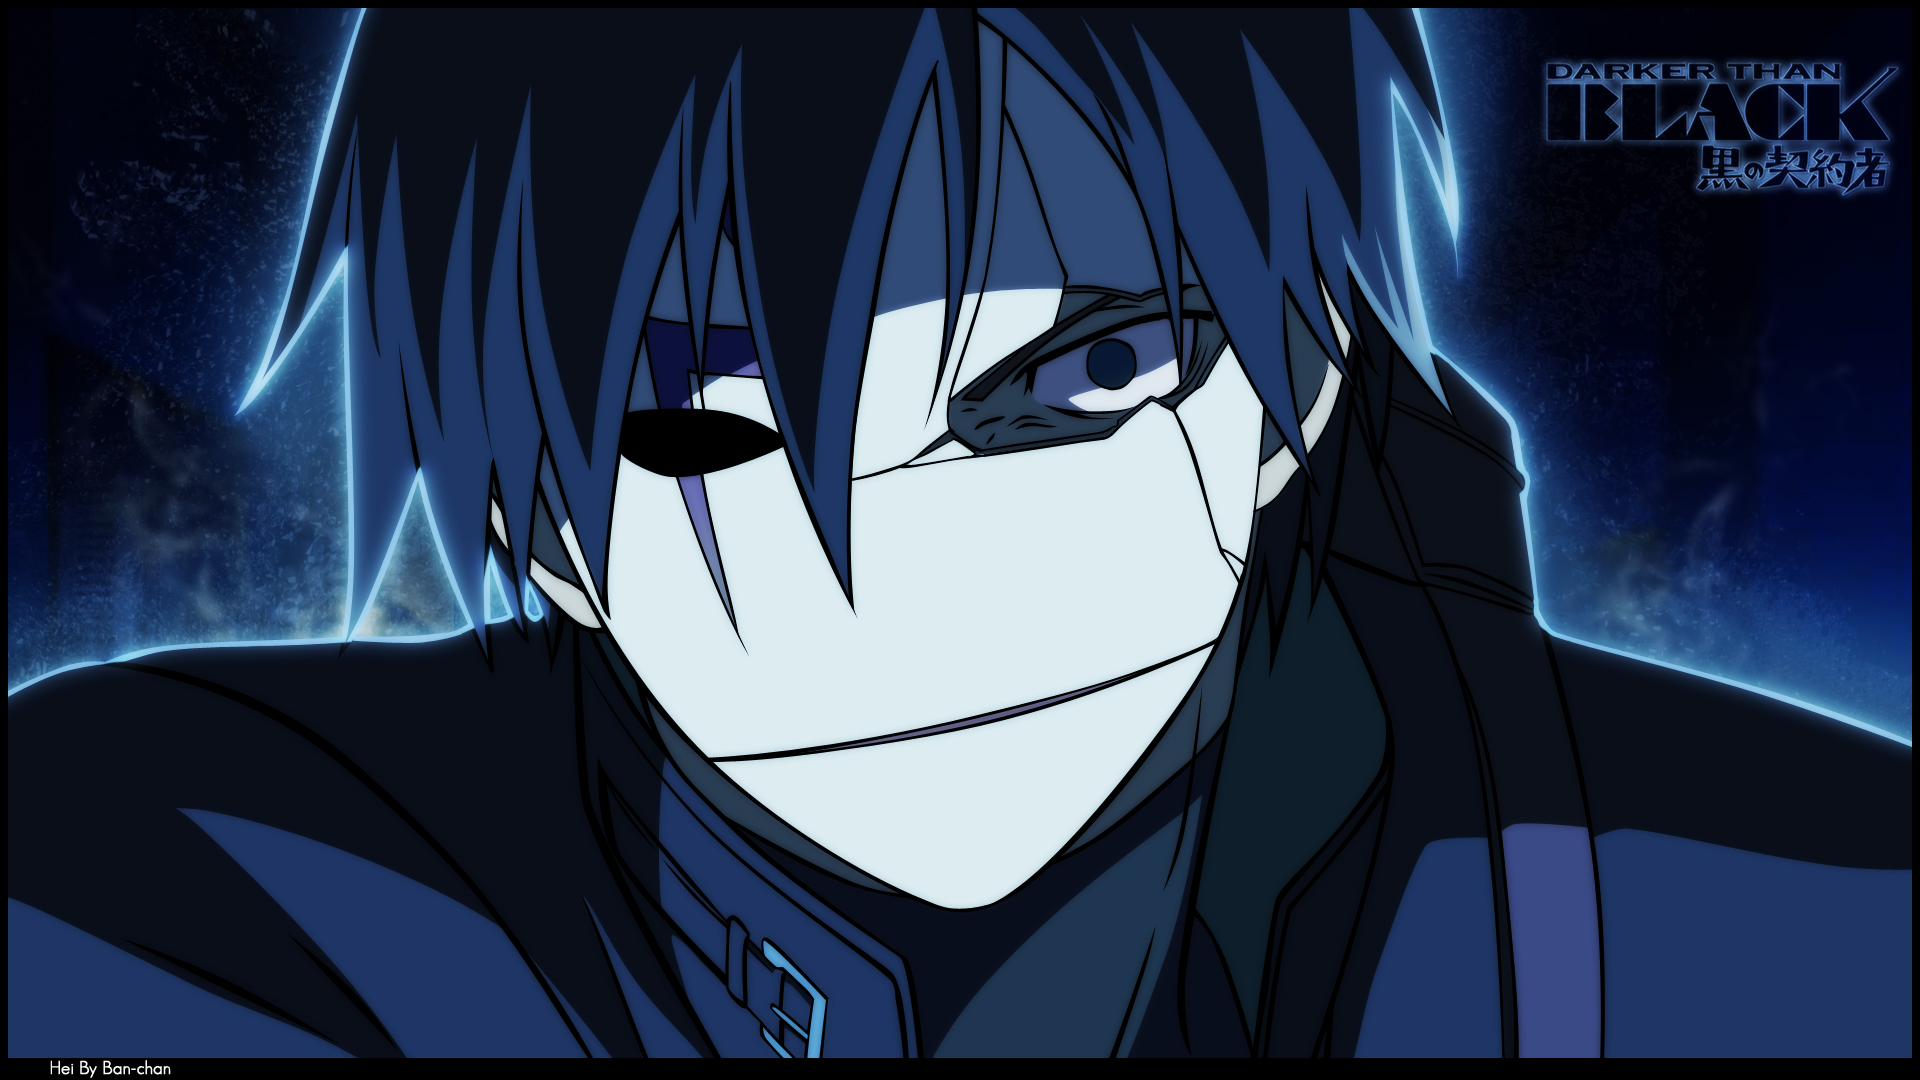 Free Download Hei Darker Than Black Wallpaper ID110185 1080p For Computer 1920x1080